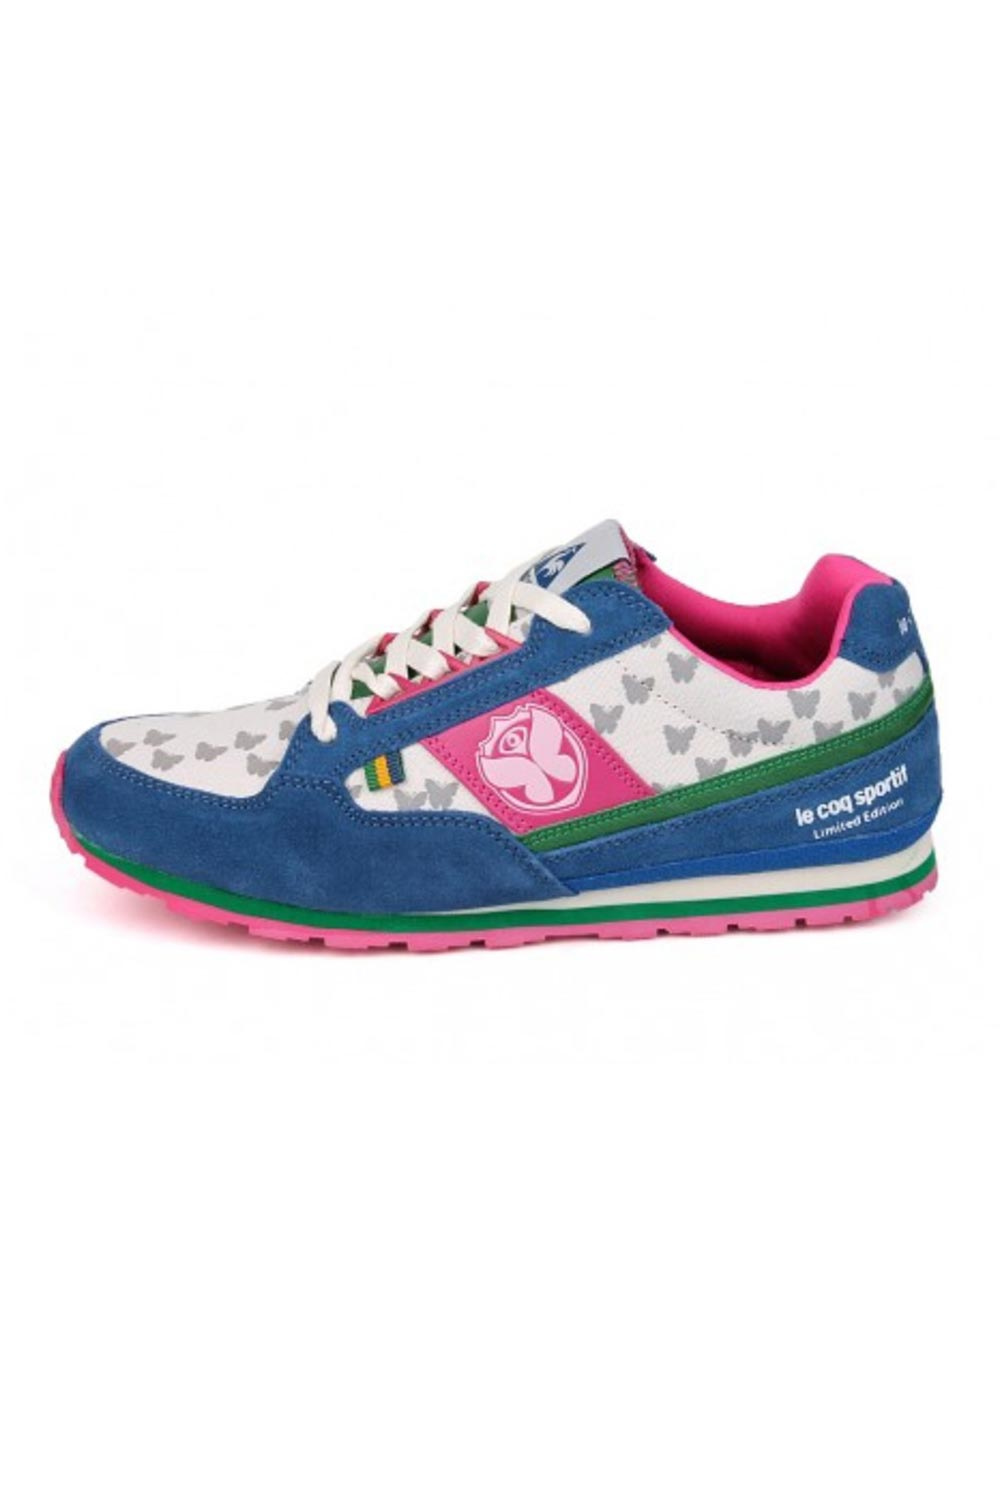 Le Coq Sportif Thiennes Tomorrowland Limited Edition